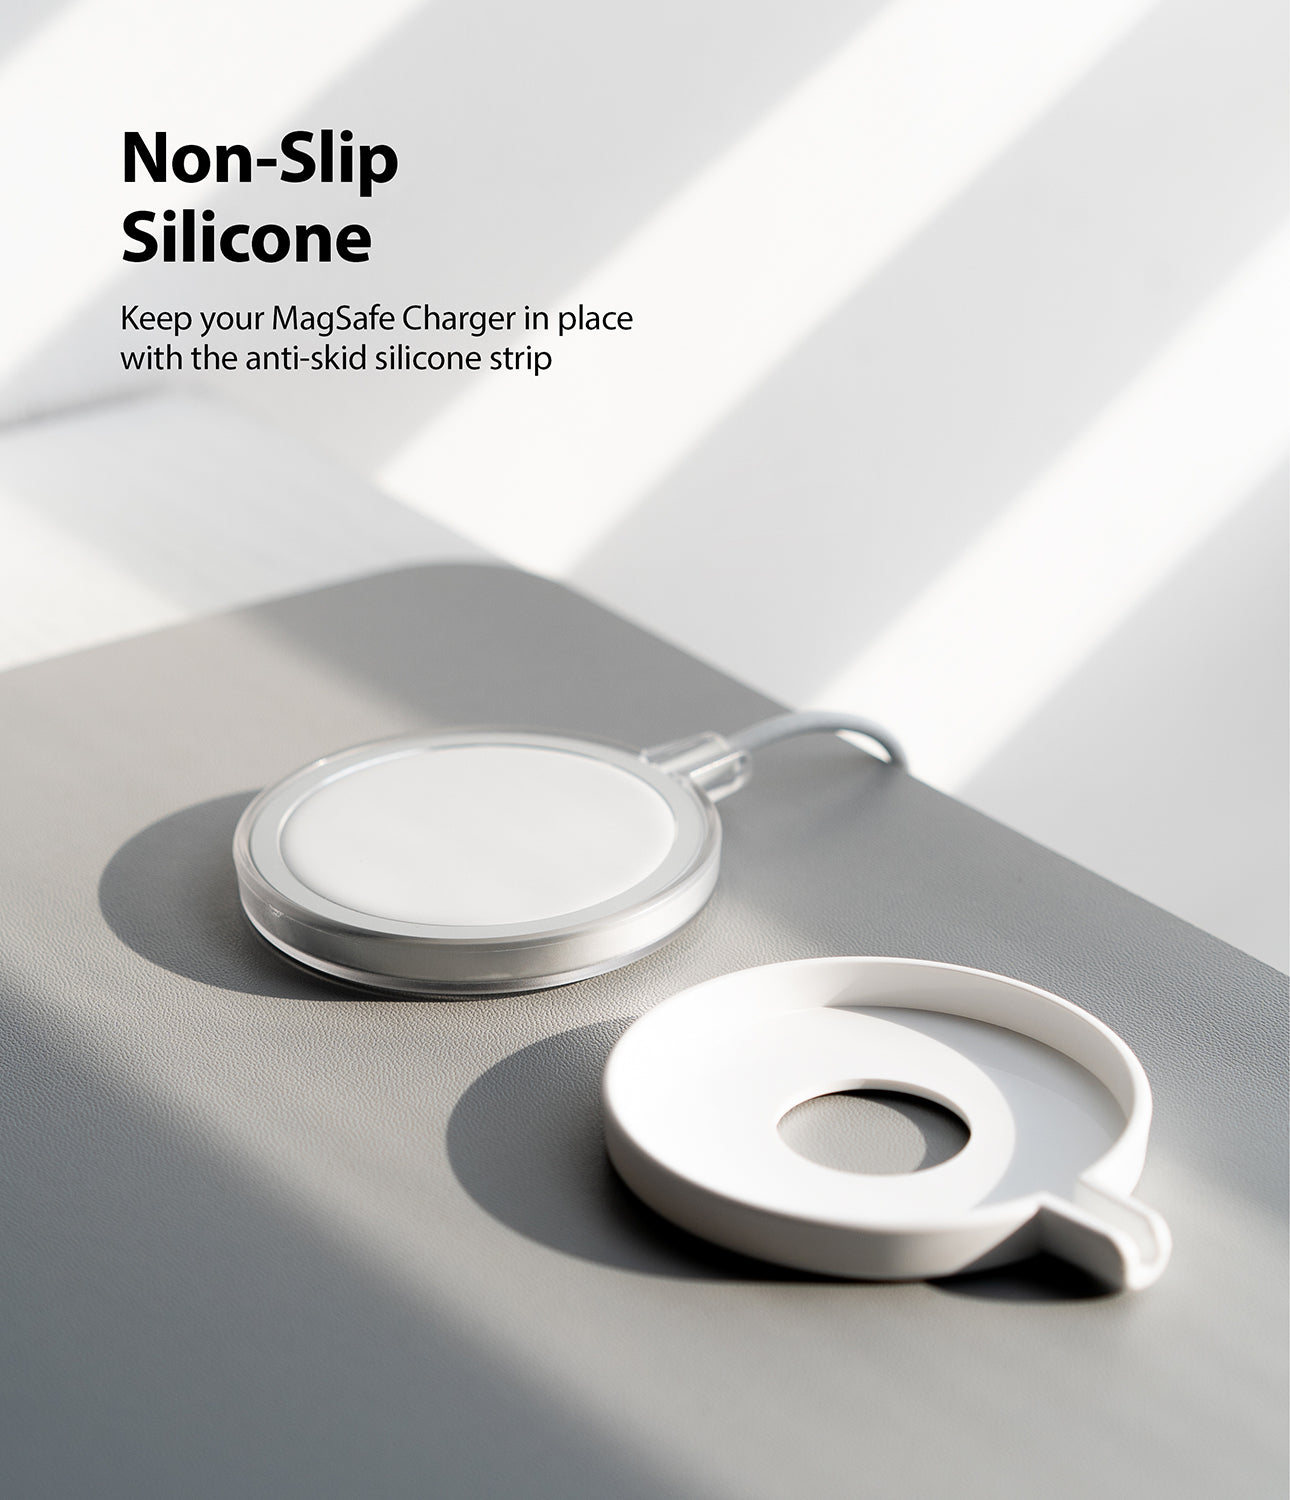 keep your macsafe charger in place with the anti-skid silicone strip